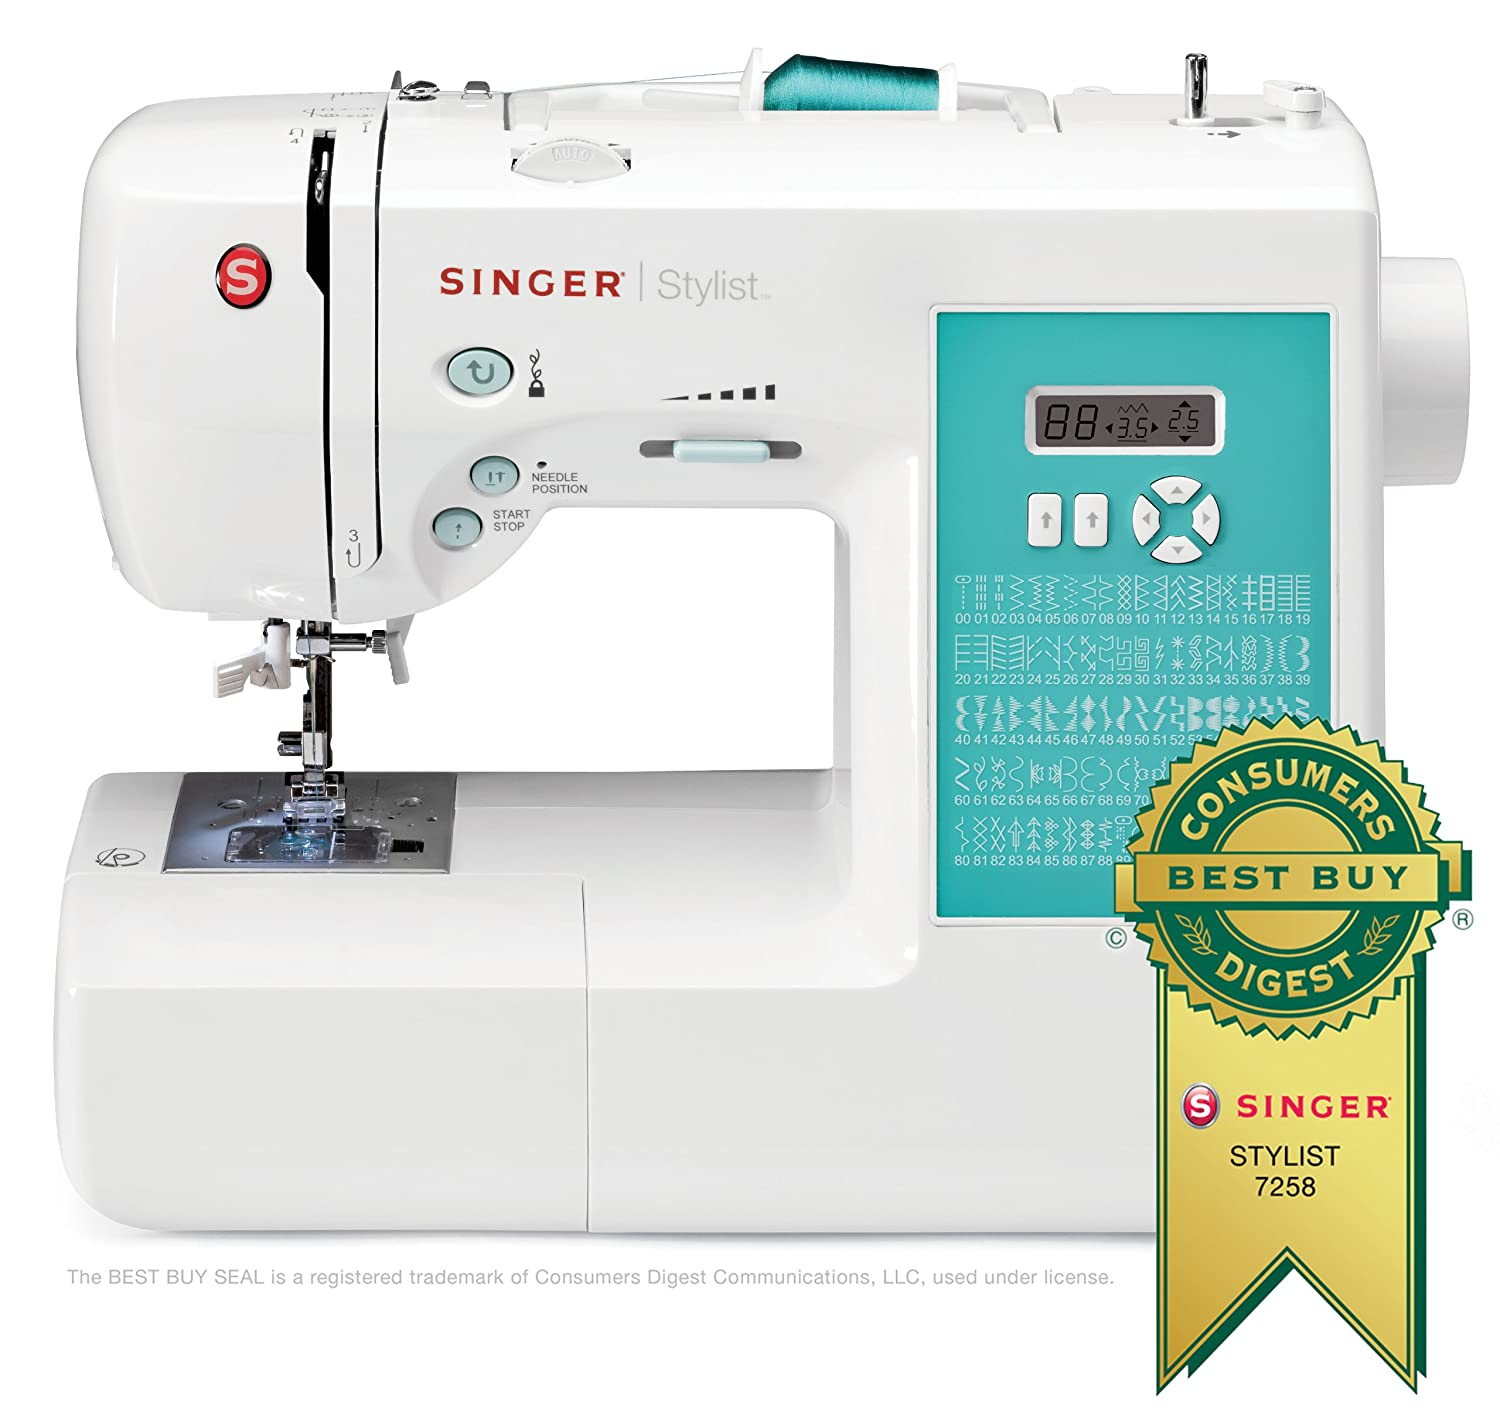 SINGER 7258 Stylist Award-Winning 100-Stitch Computerized Free-Arm Sewing Machine with Instructional DVD and More $129.55